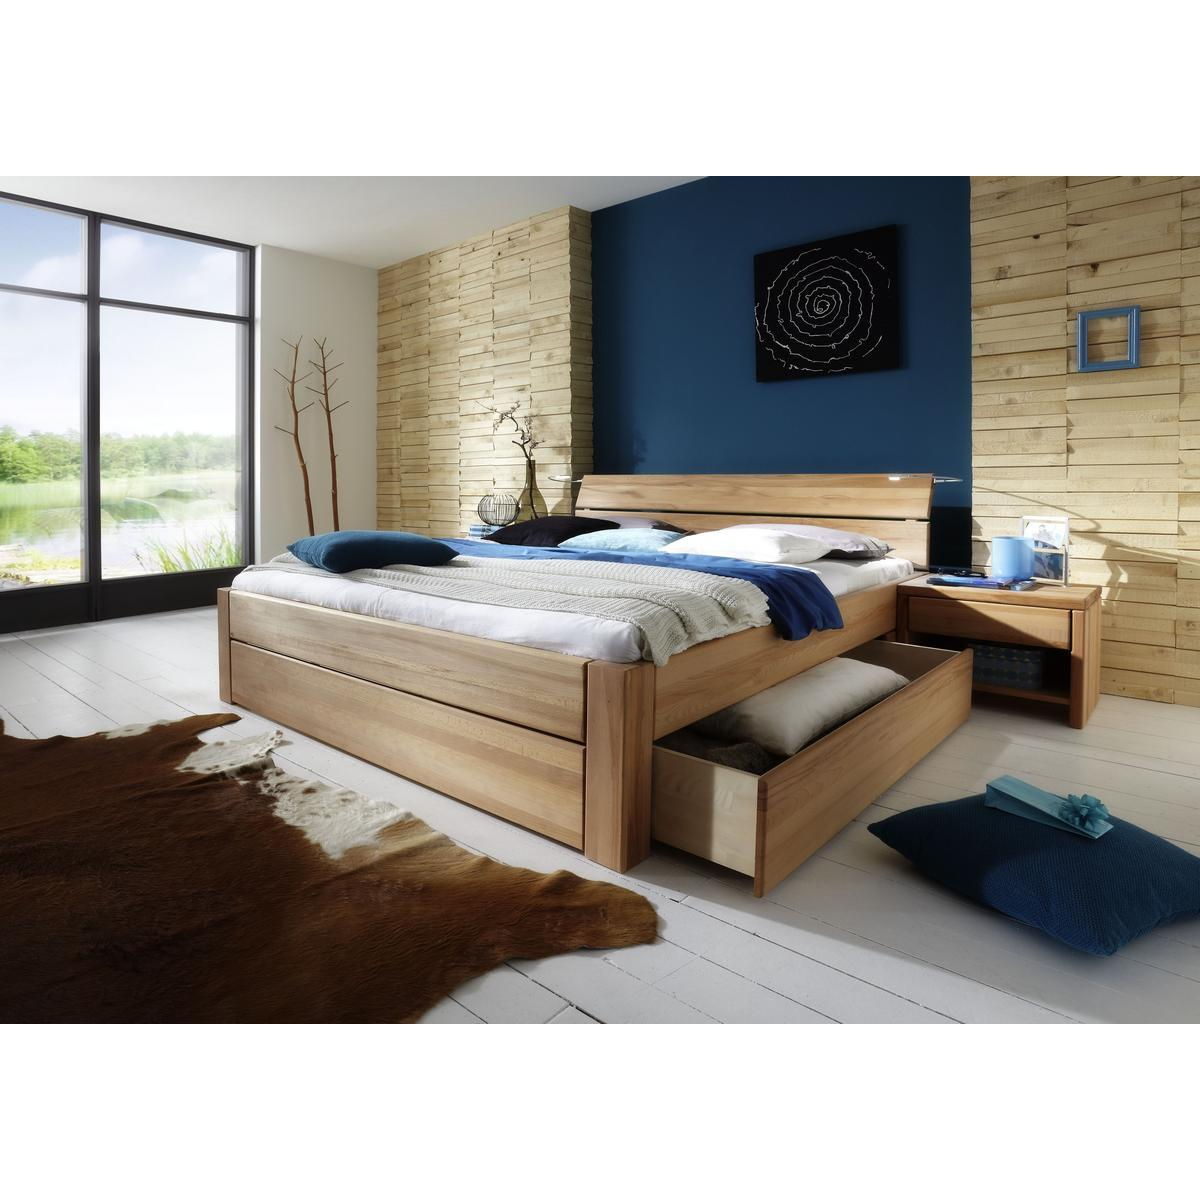 massivholz schubkastenbett 90x200 easy sleep kernbuche massiv ge lt 9209 93 52 87. Black Bedroom Furniture Sets. Home Design Ideas